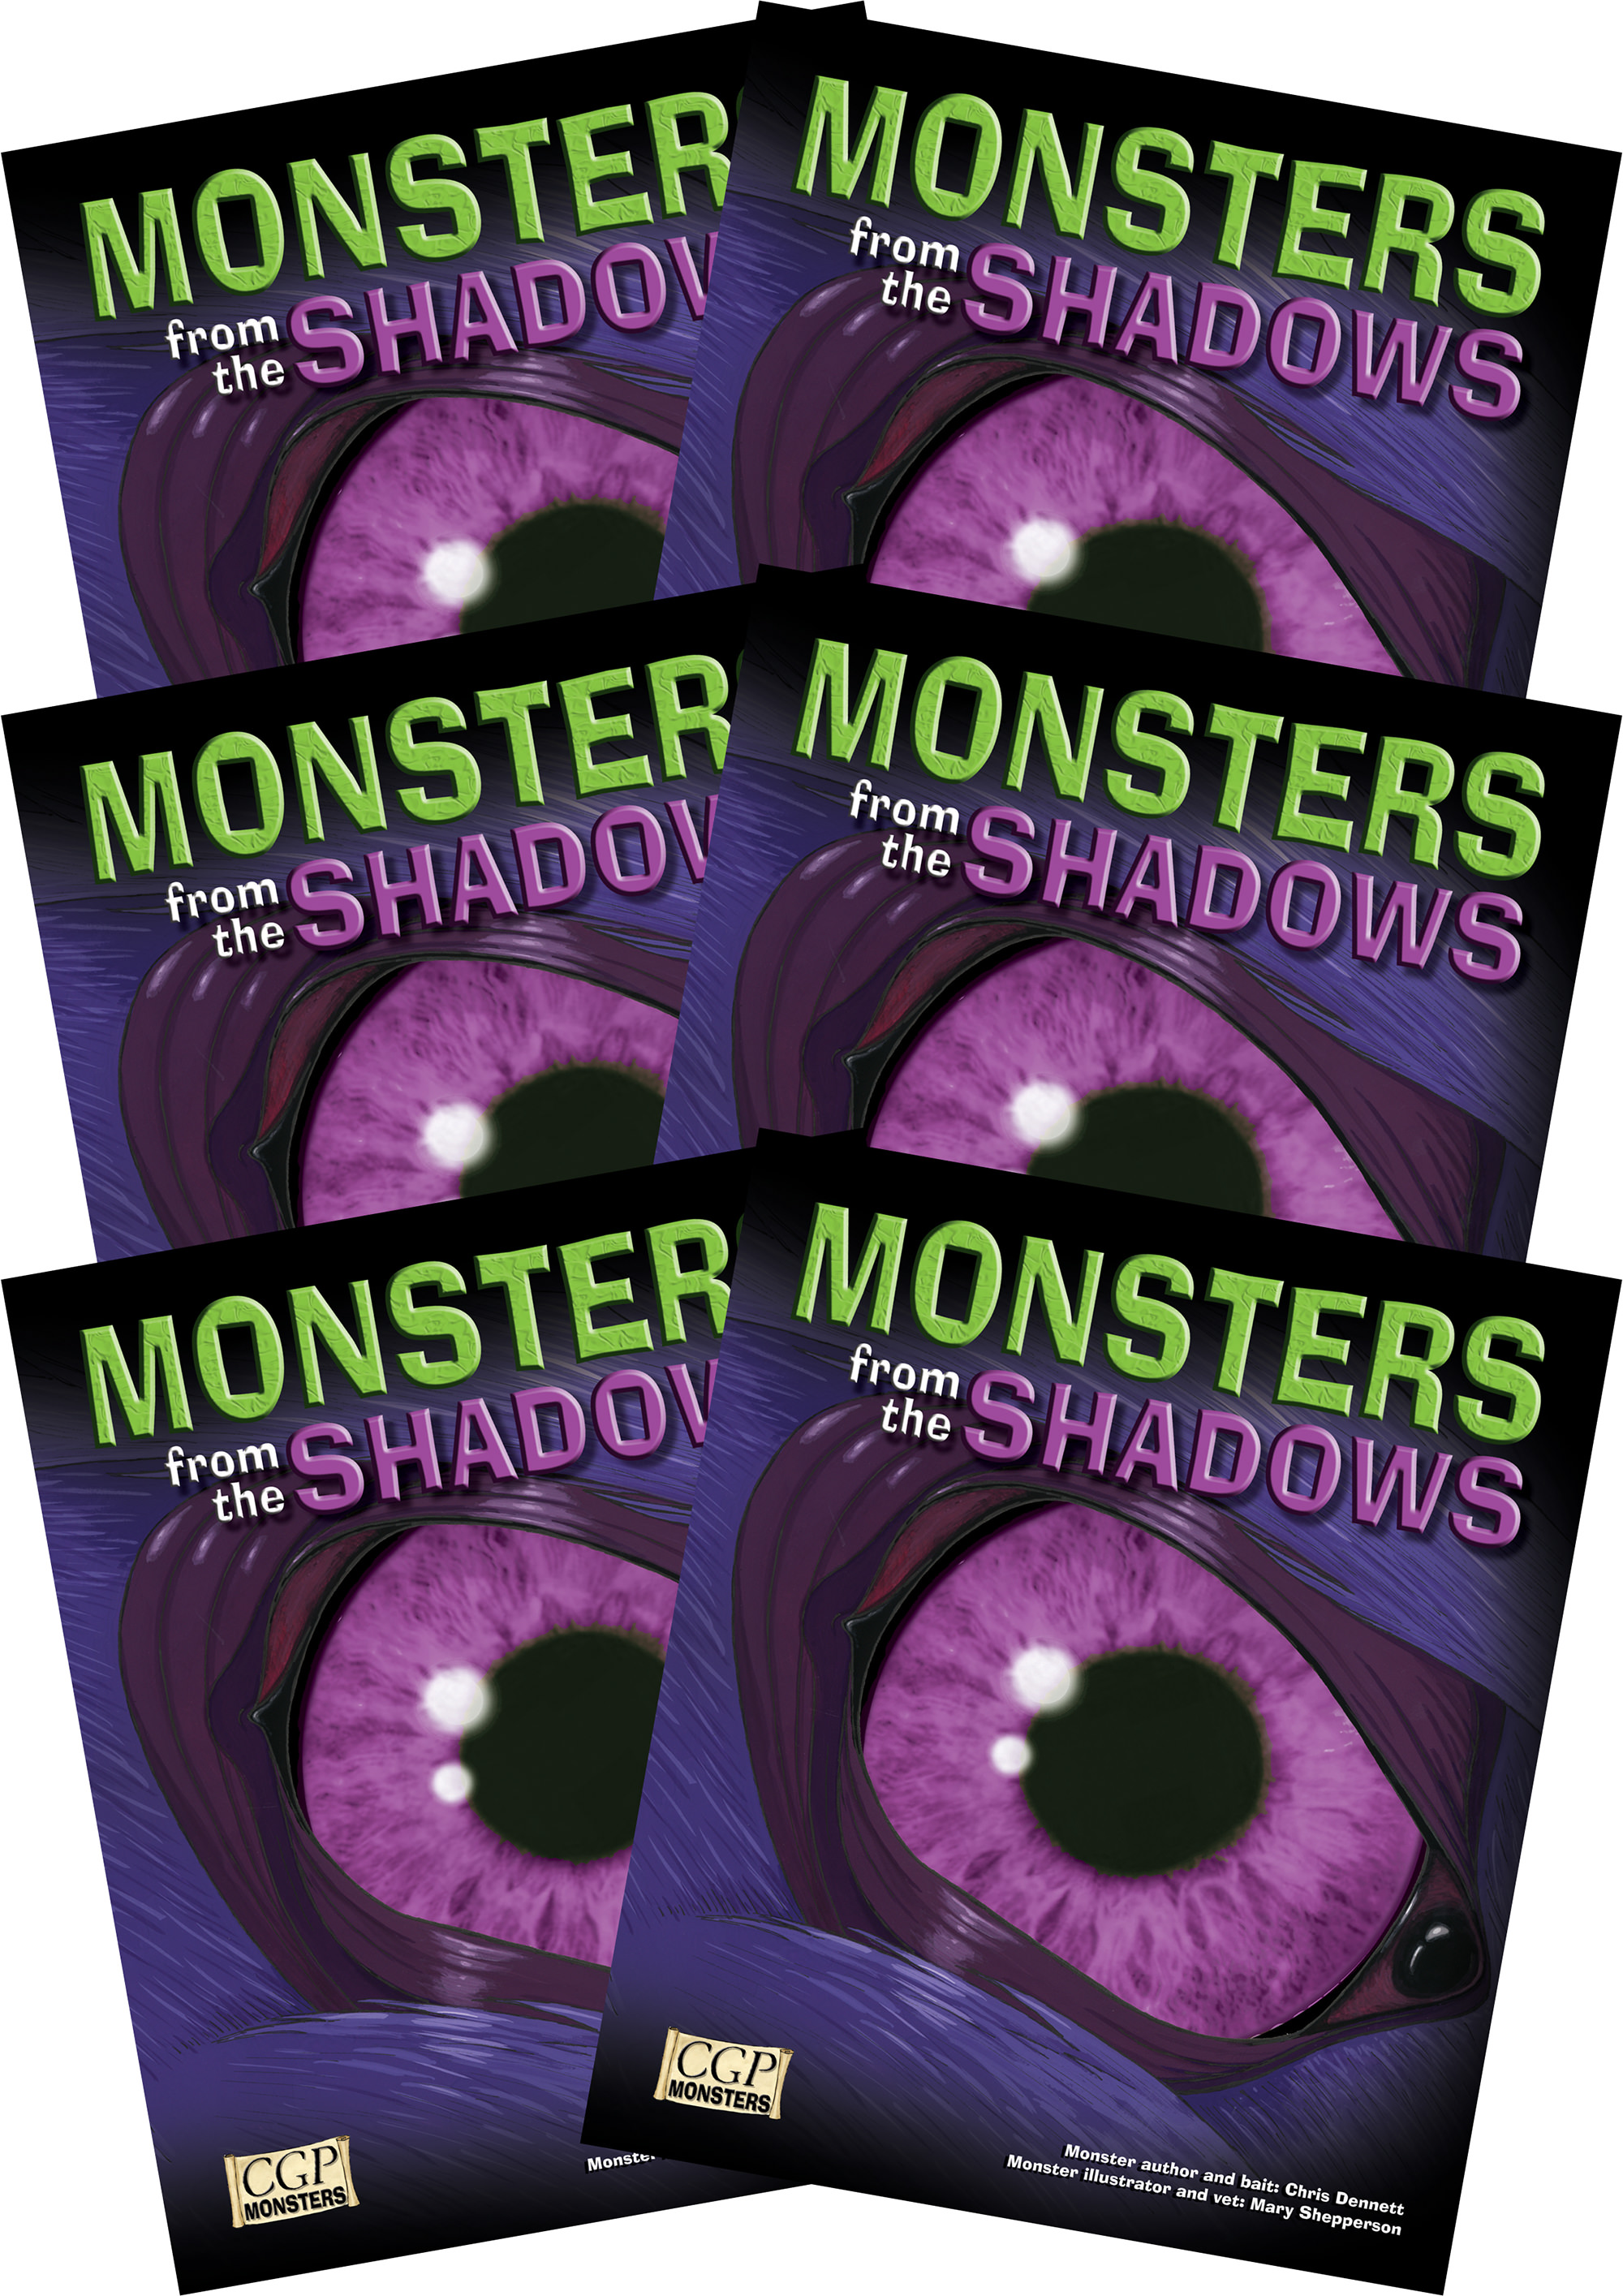 6RSHM2 - 6 x KS2 Monsters from the Shadows Reading Pack